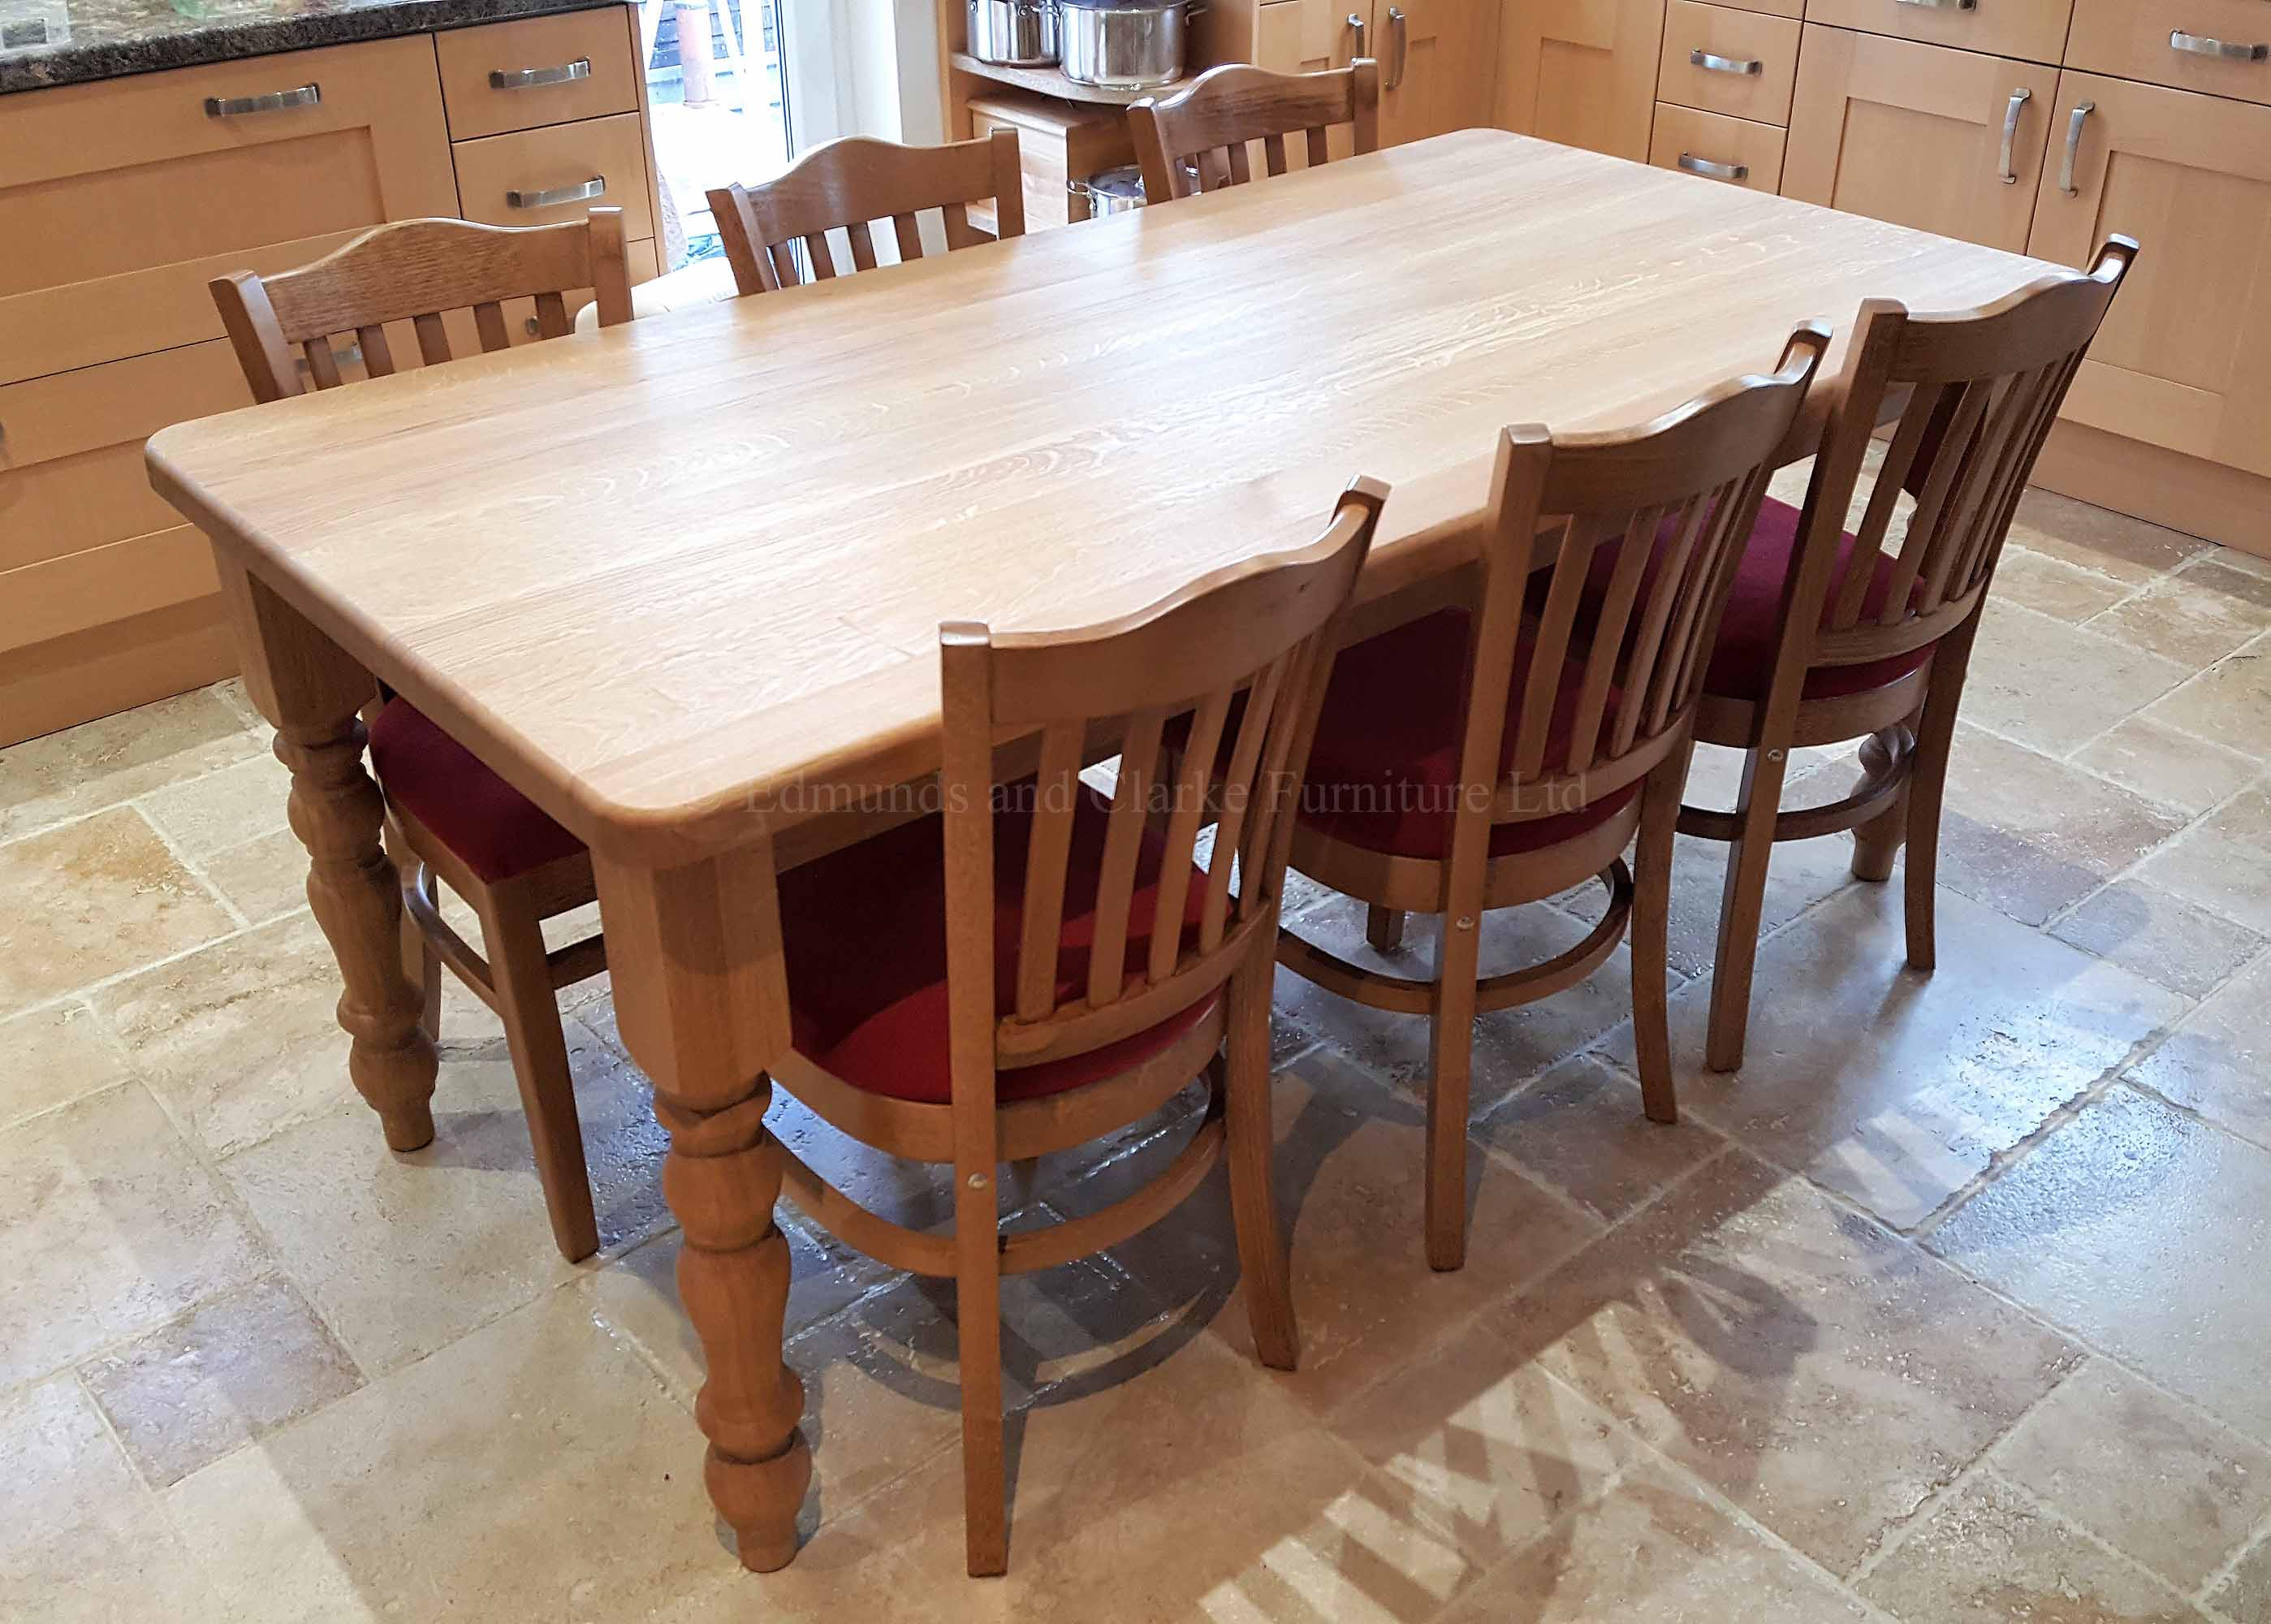 Edmunds Oak Farmhouse Table. Turned legs and oiled oak all over. many chairs to go with this table